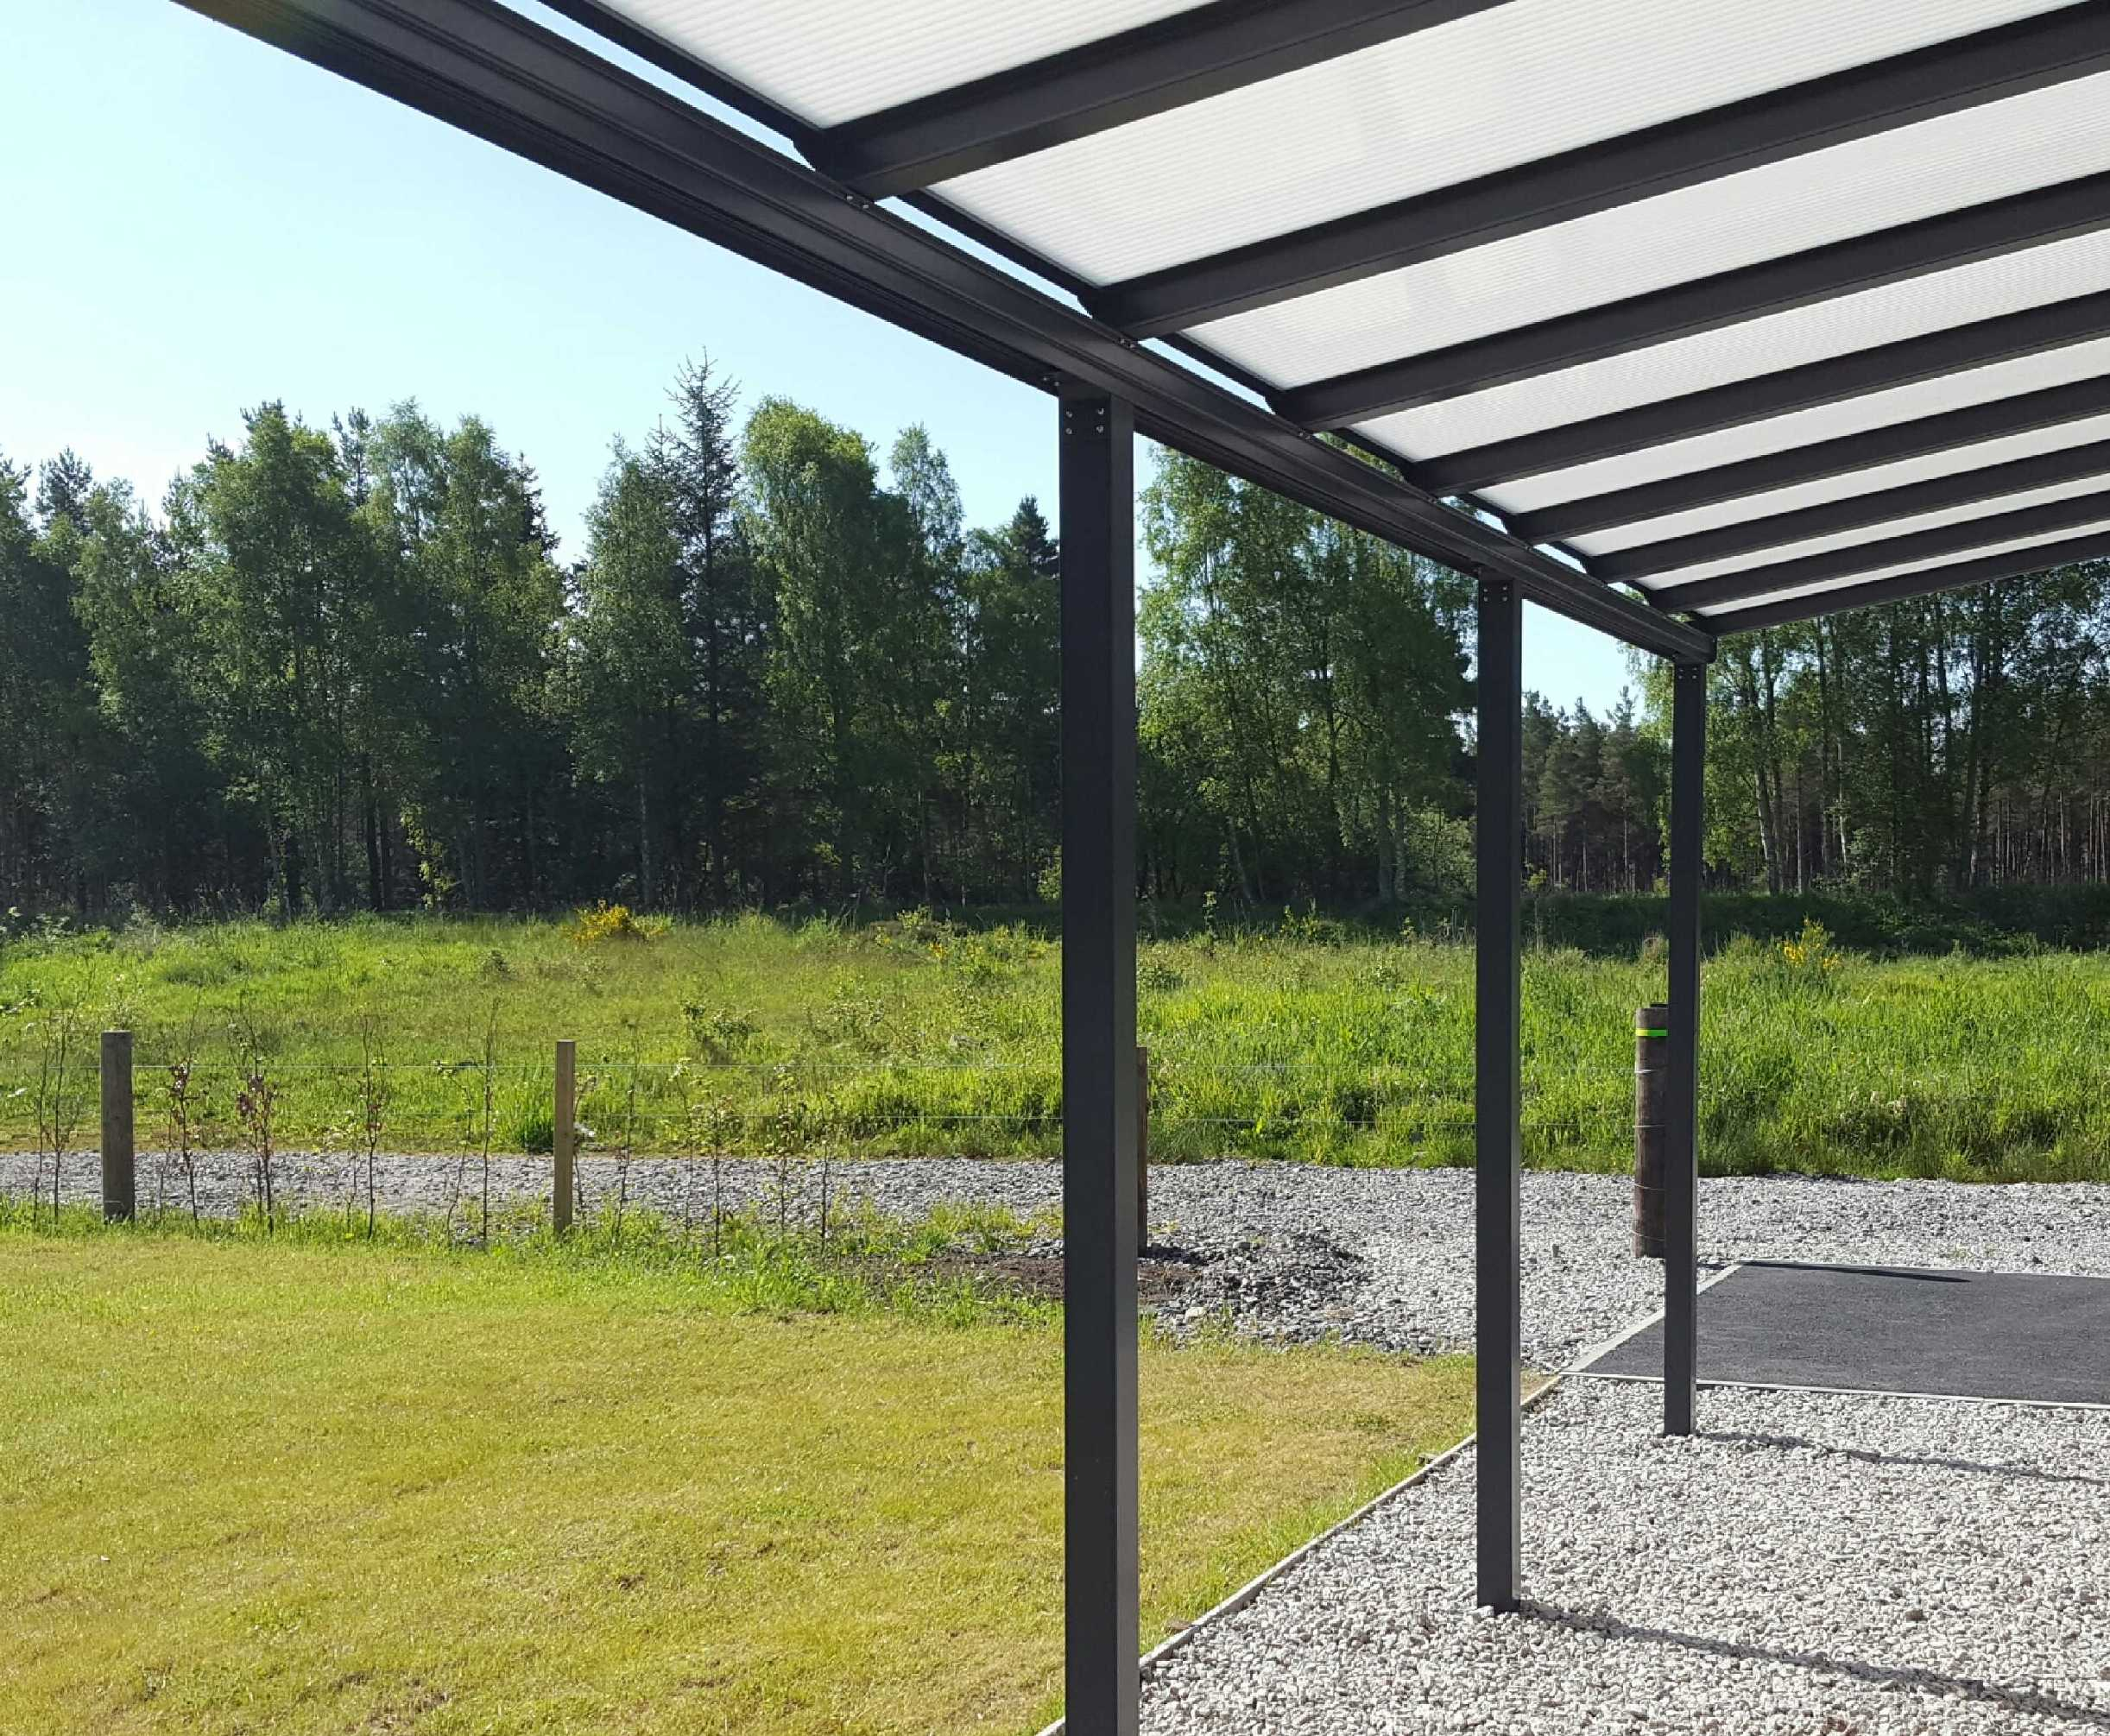 Omega Smart Lean-To Canopy, Anthracite Grey, 16mm Polycarbonate Glazing - 9.6m (W) x 4.5m (P), (5) Supporting Posts